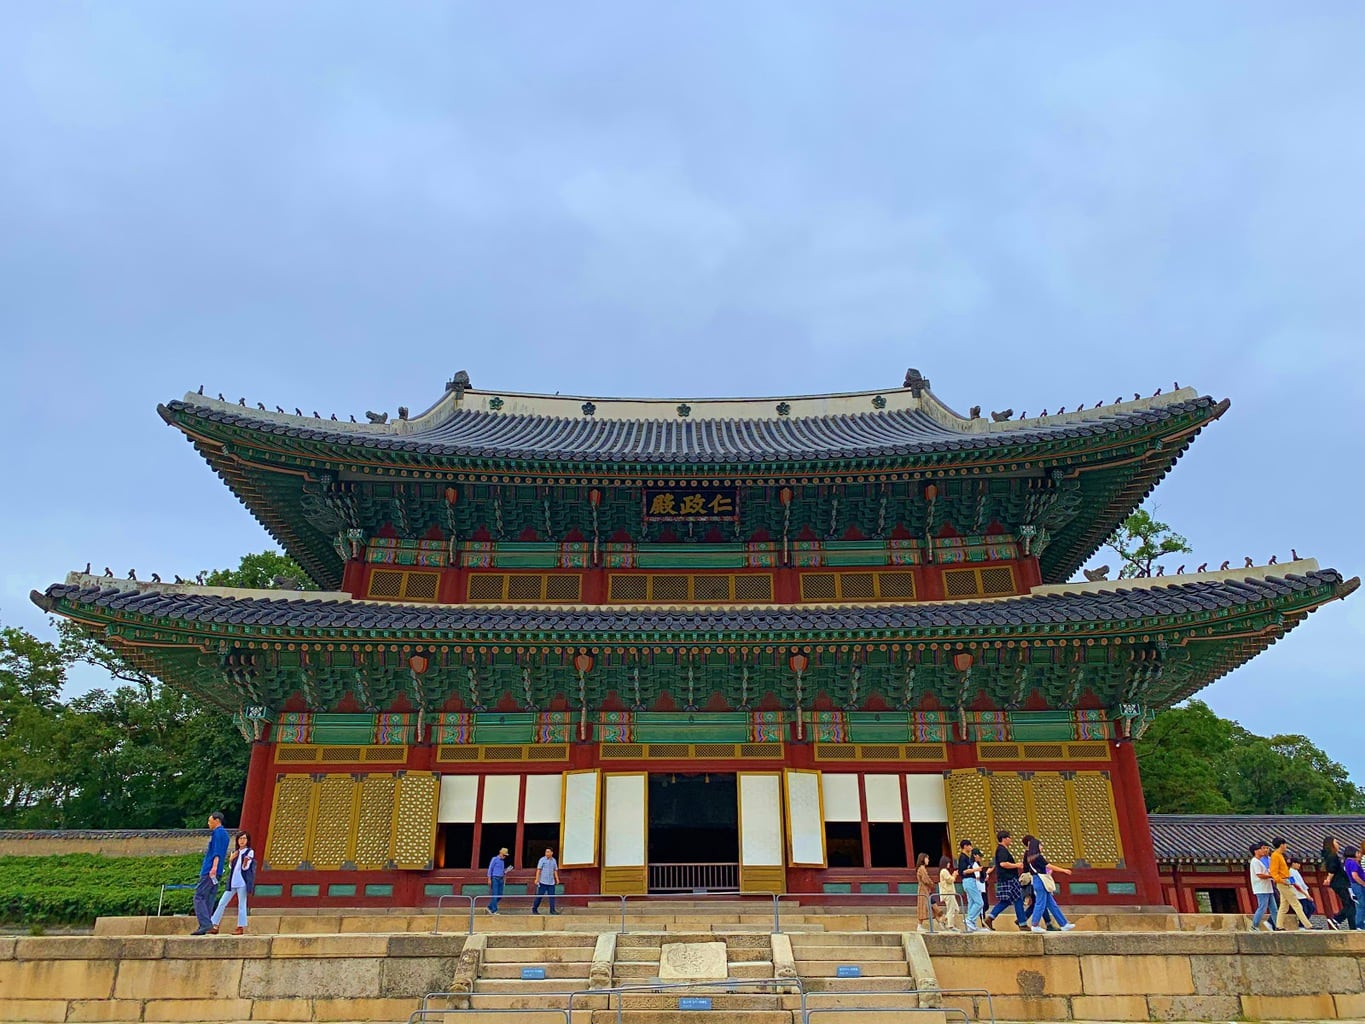 Changdeokgung is surrounded by nature